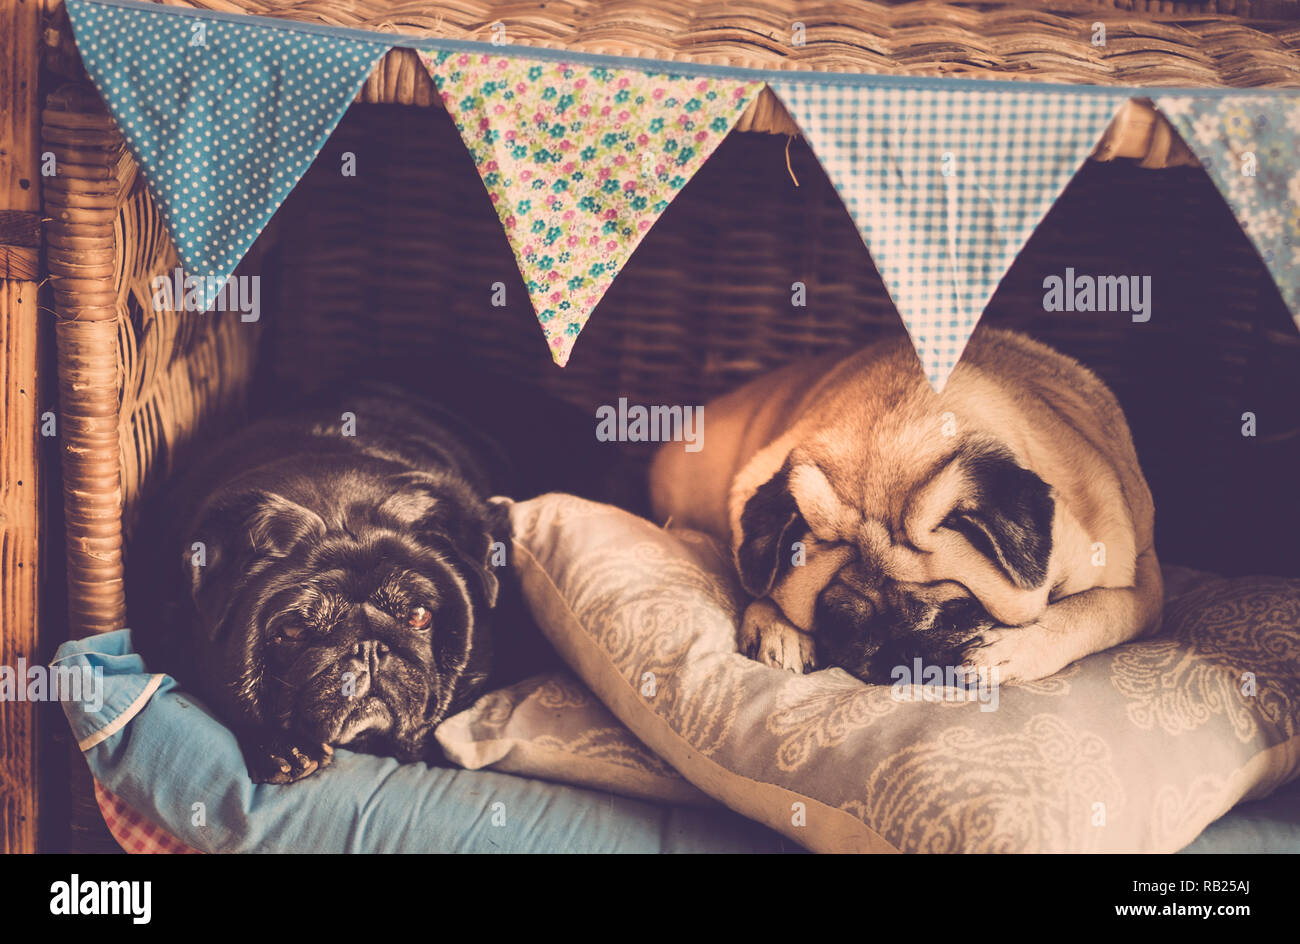 Two beautiful old dog pug together in friendship or like married couple in the cozy little house sleeping and living closer - love and friends concept - Stock Image